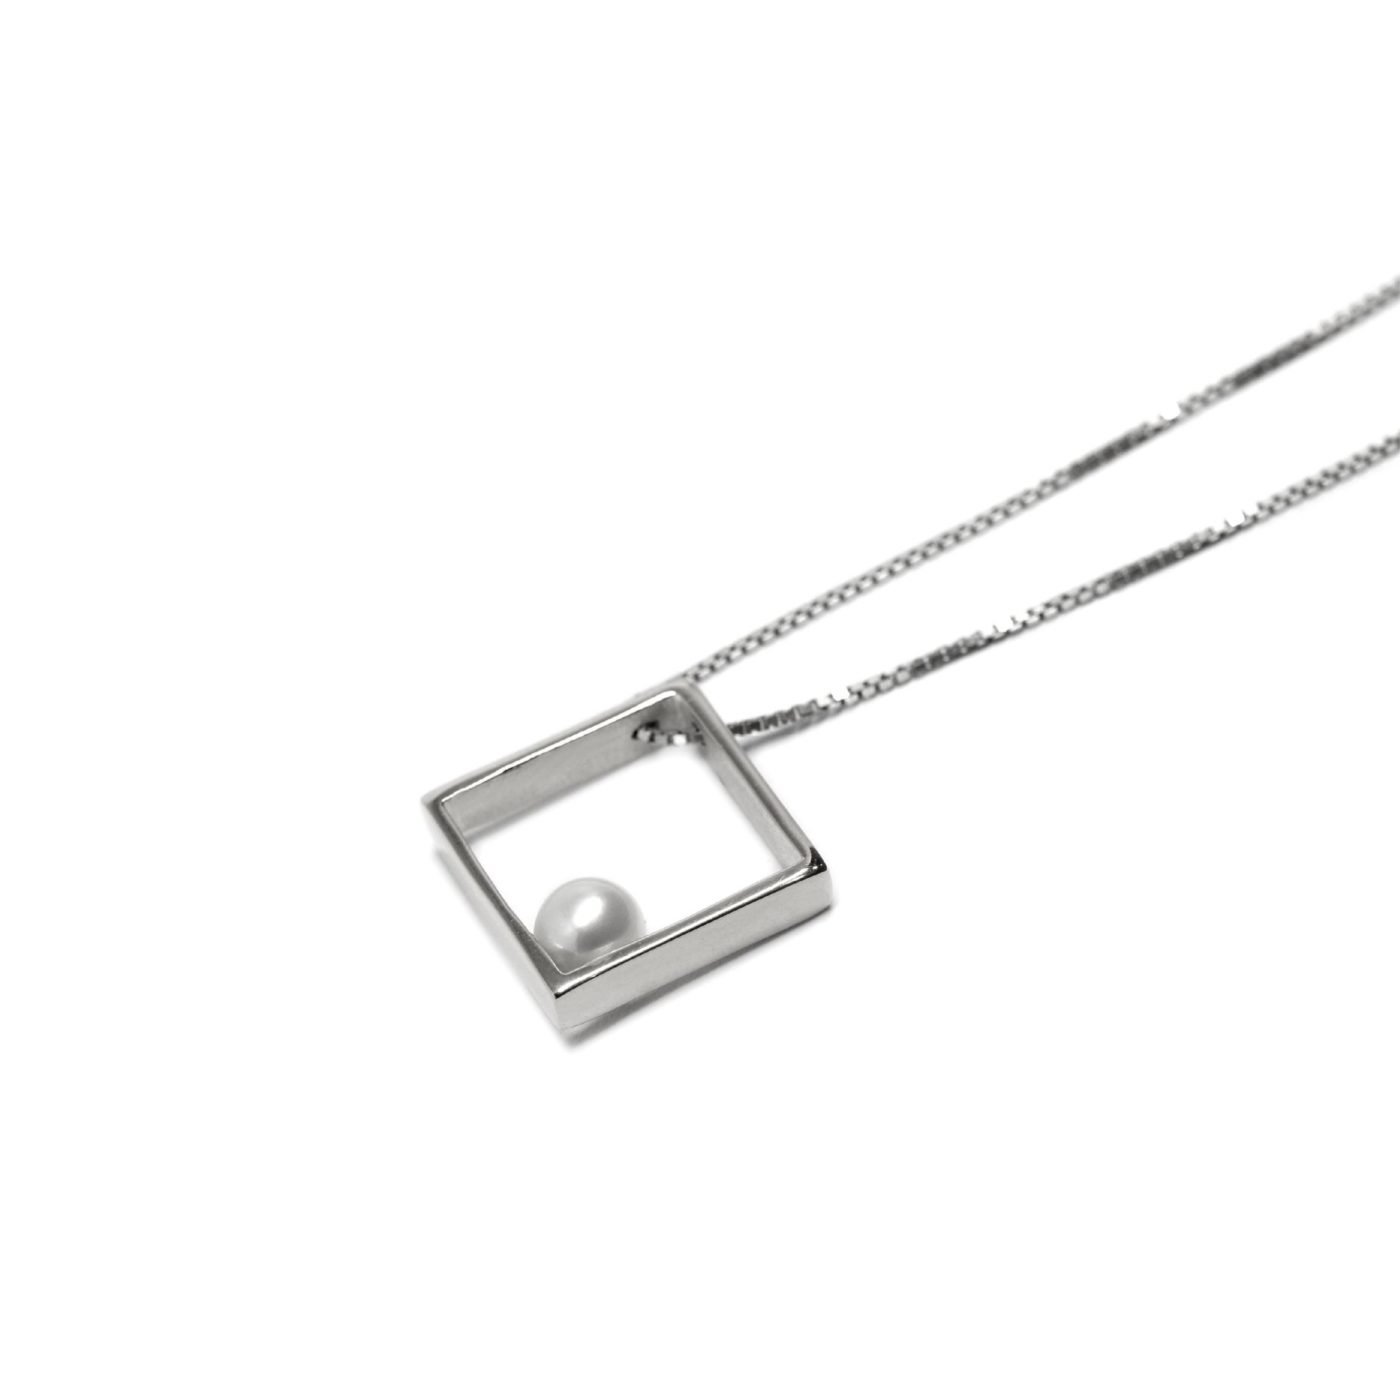 Tokyo Pendant 925 Sterling Silver and Pearl